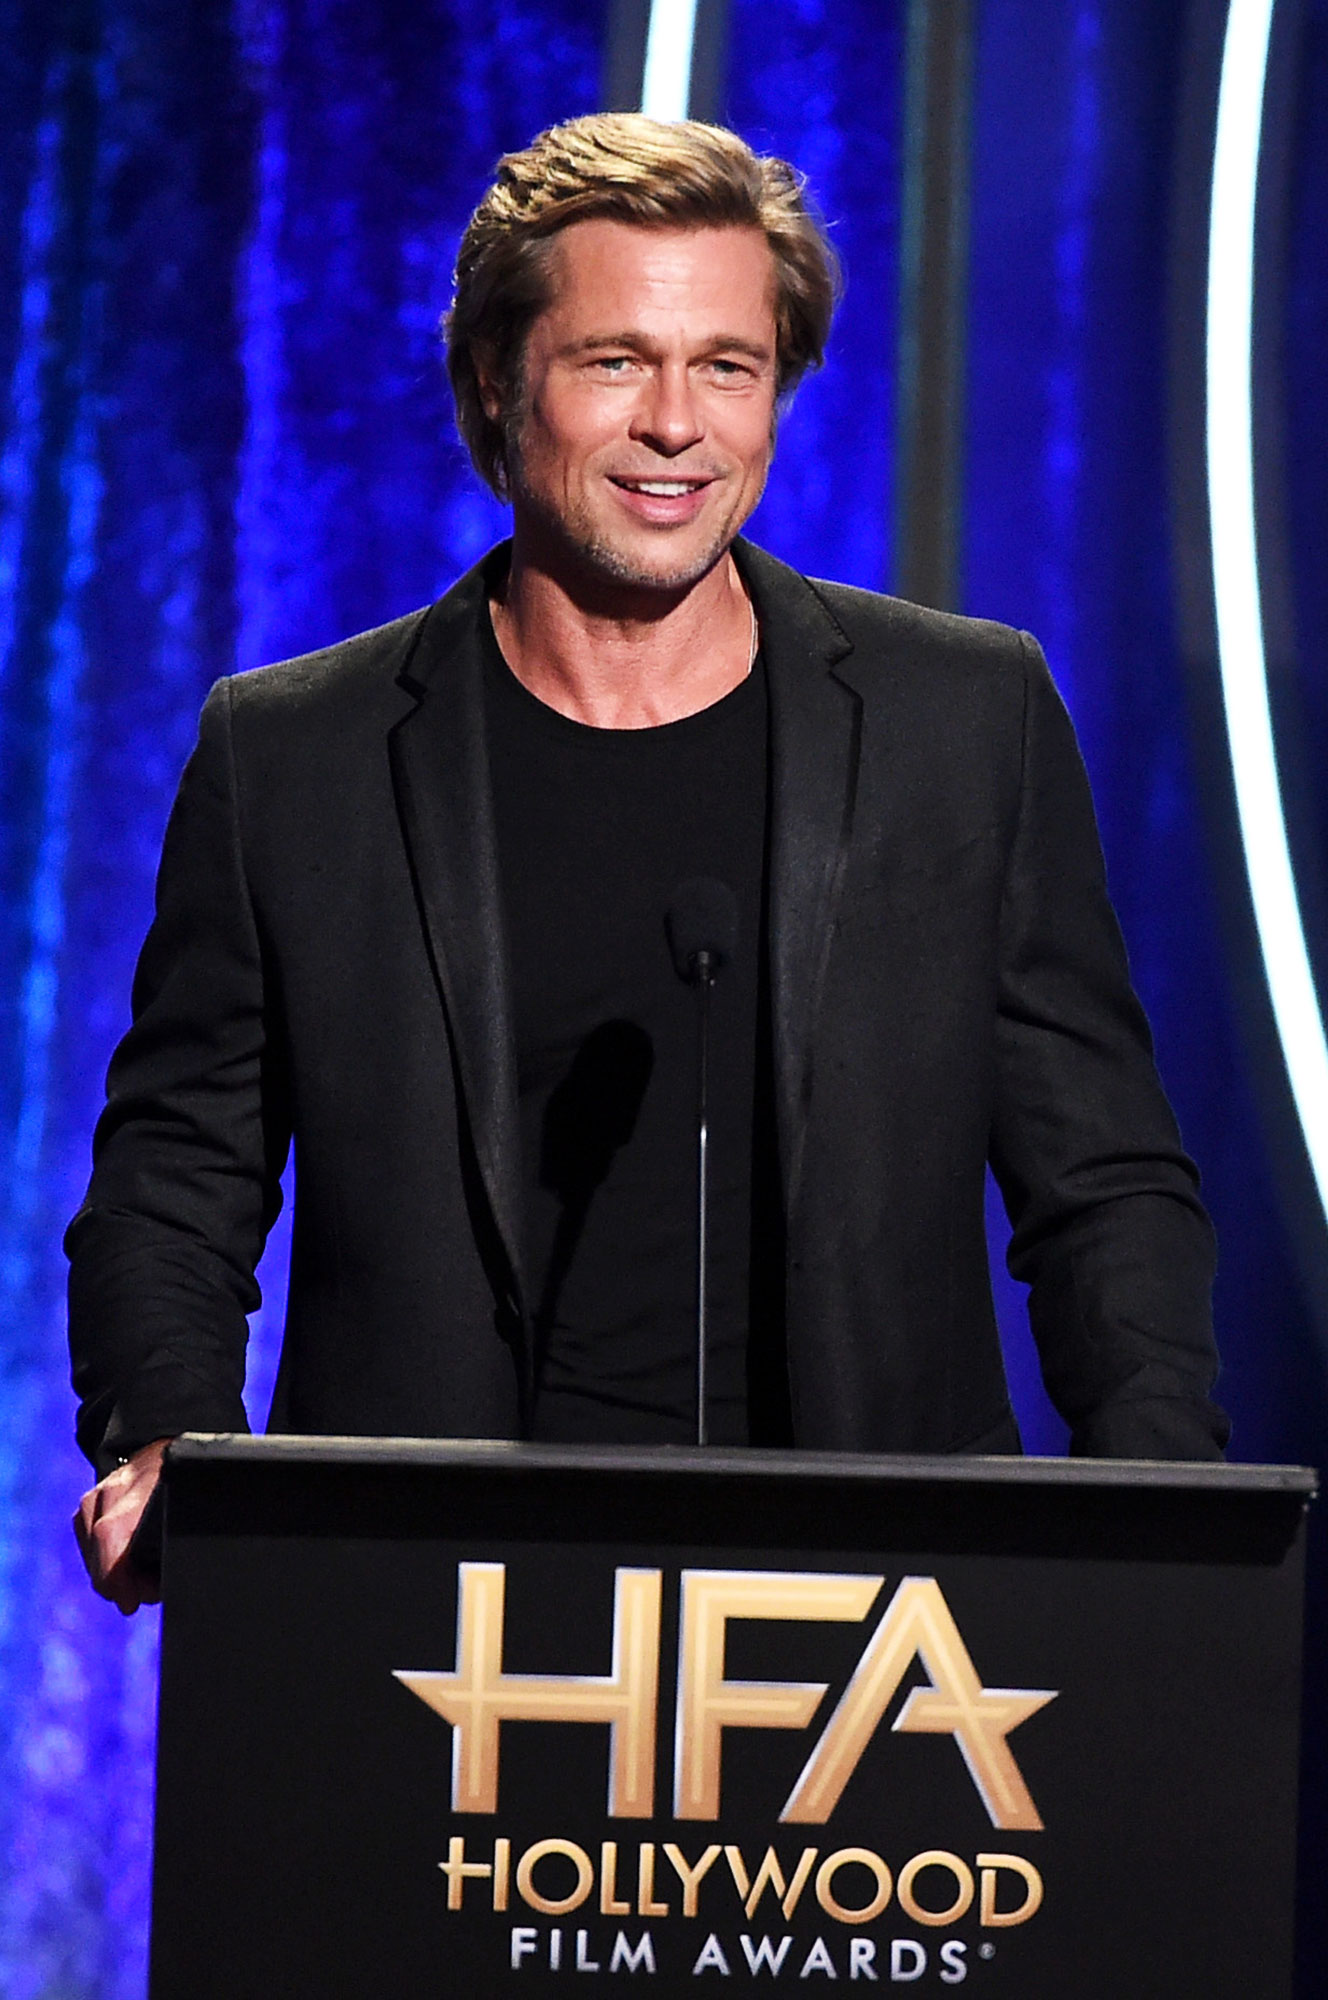 Brad Pitt Hosts Kids Overnight Ahead of Birthday - Brad Pitt speaks onstage during the 22nd Annual Hollywood Film Awards at The Beverly Hilton Hotel on November 4, 2018 in Beverly Hills, California.